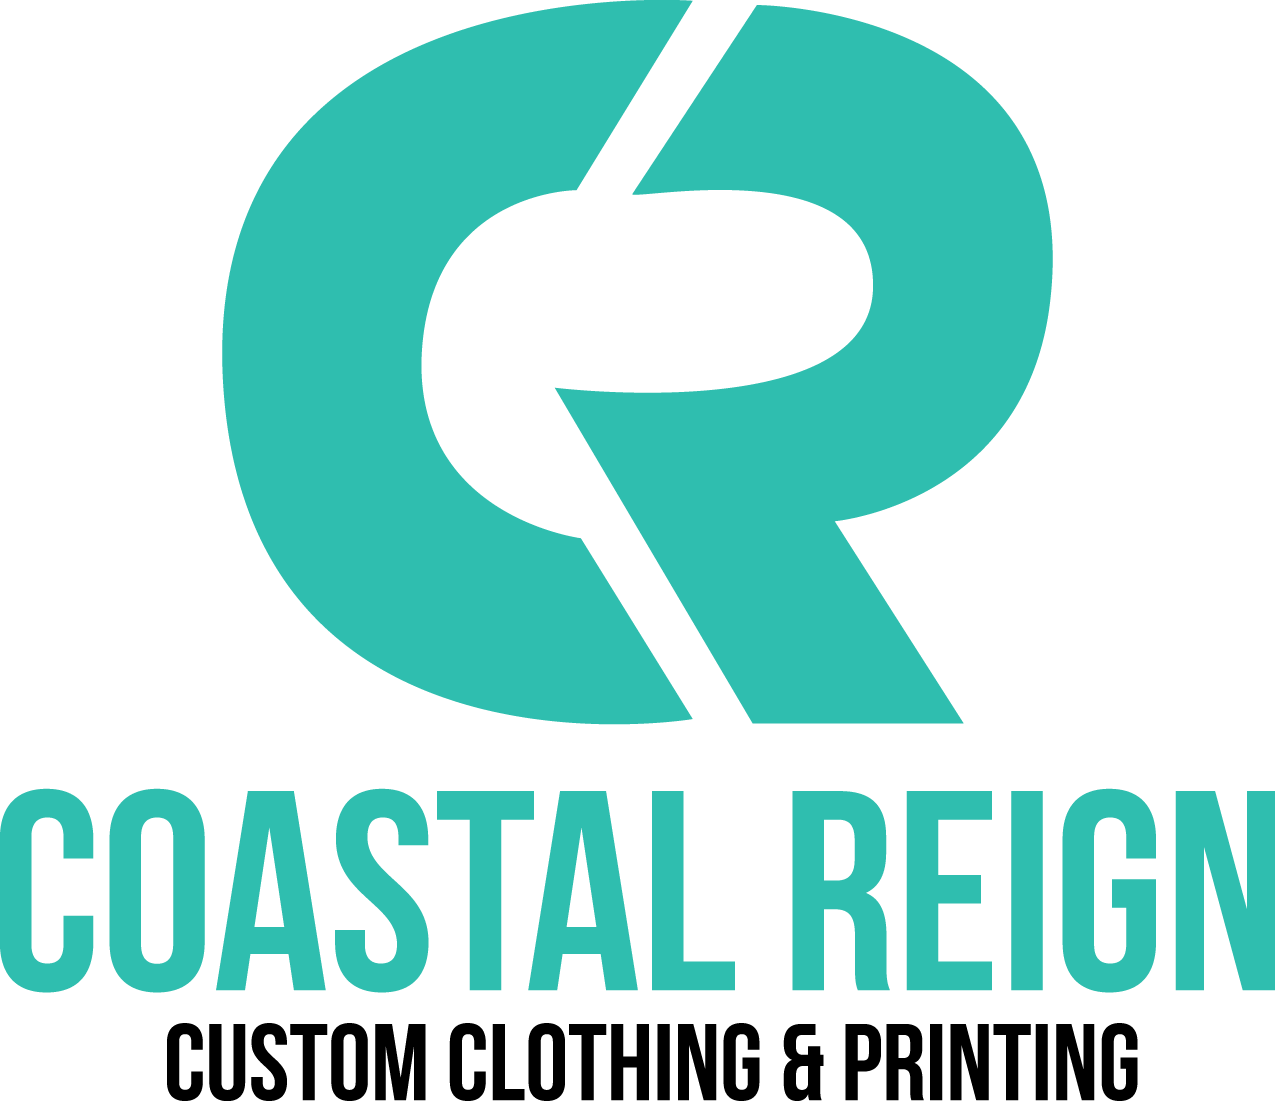 Coastal Reign FAQ Help Center home page